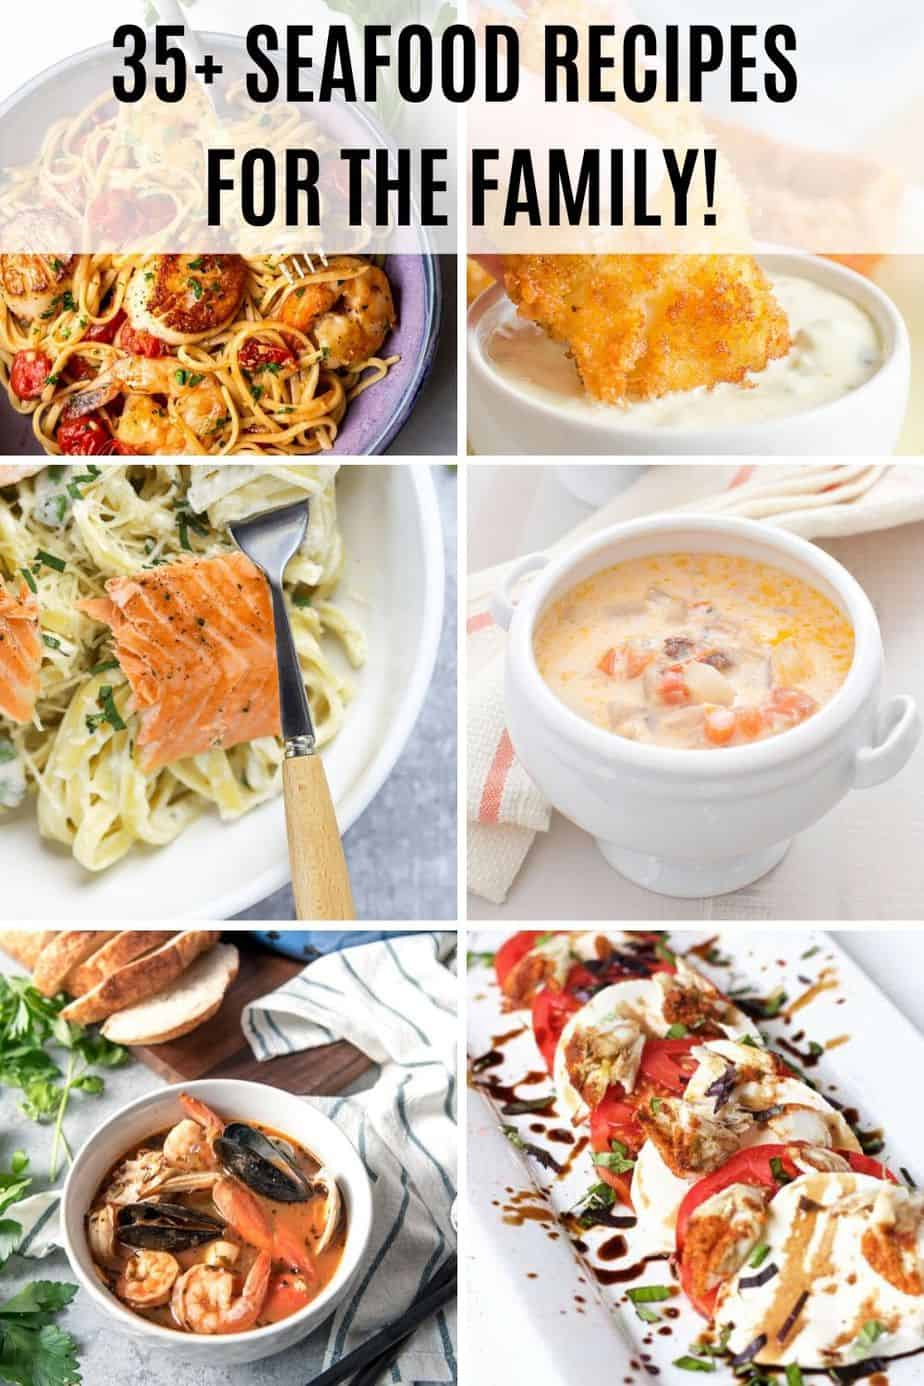 35+ impressive seafood recipes for the family